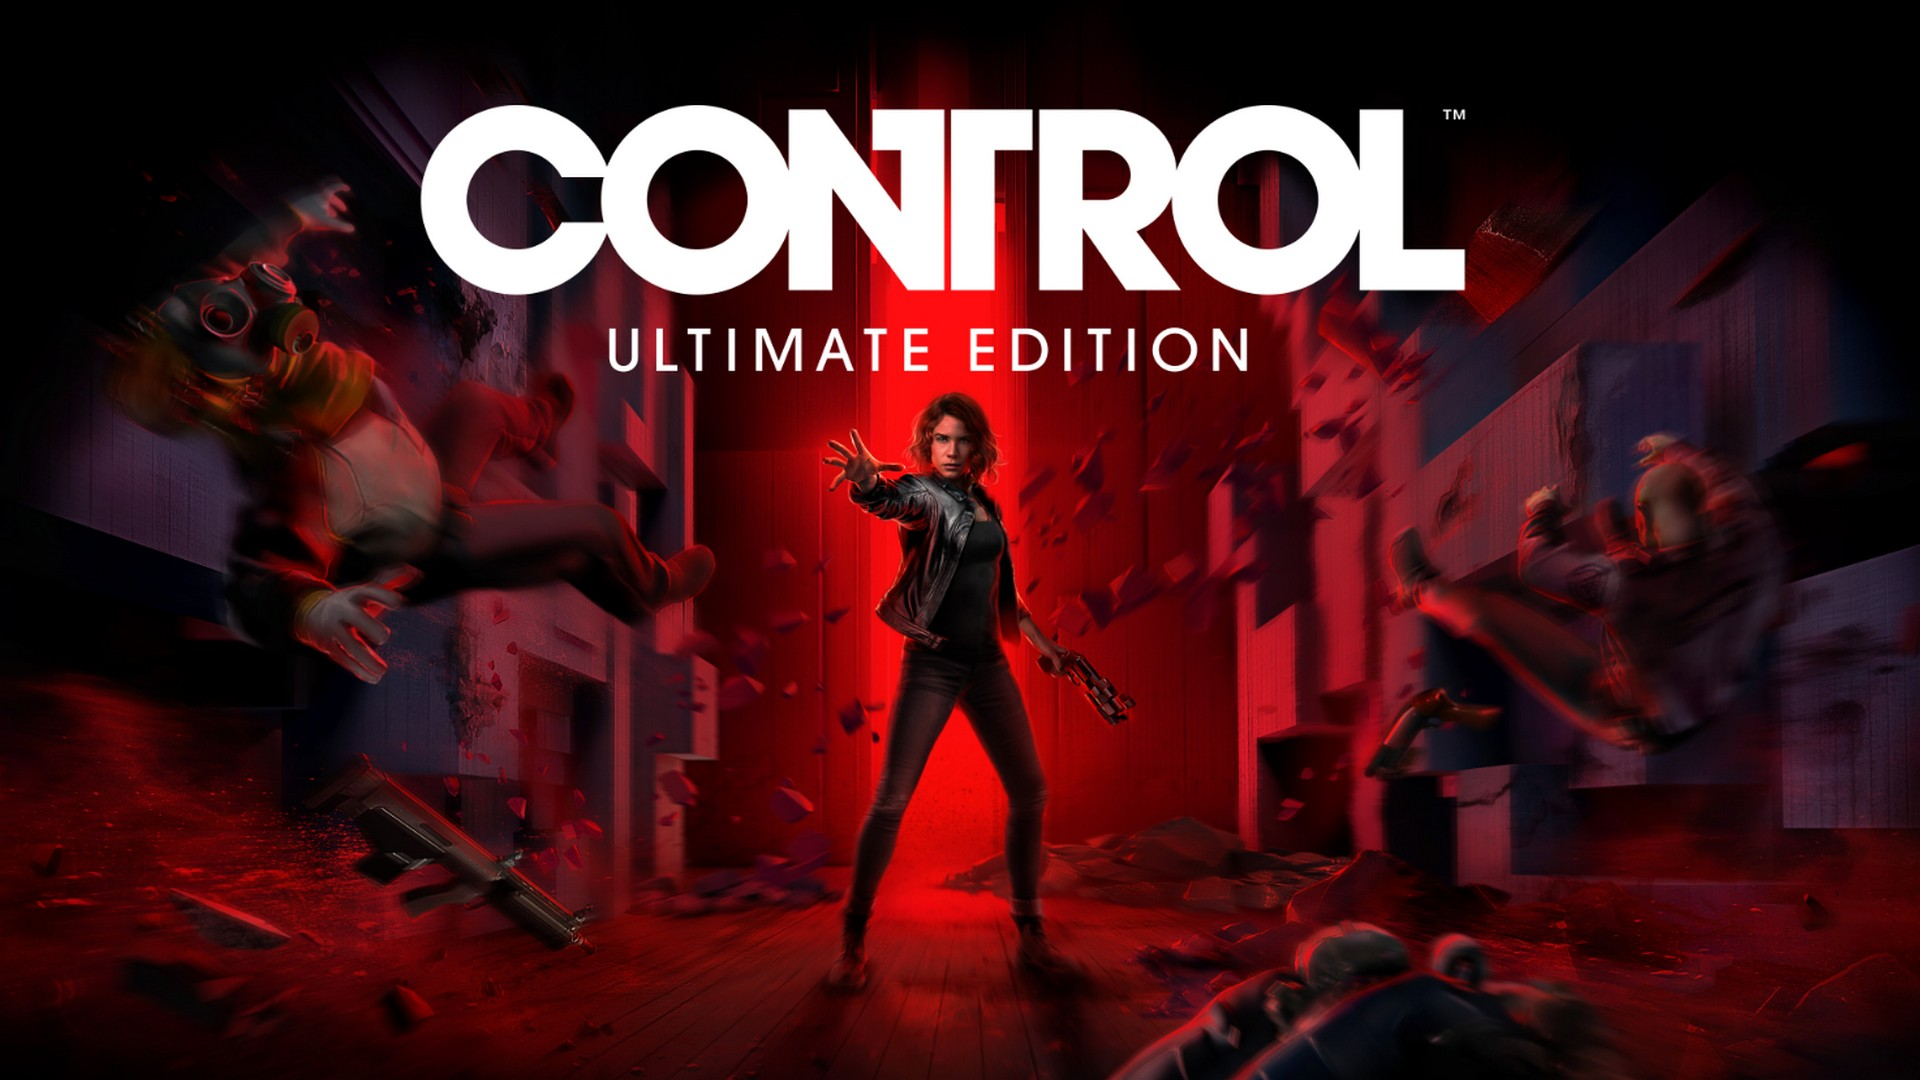 """AWE Is A Thrilling Finale To Supernatural Action Game Of The Year """"Control"""" Available Today For PC, Playstation 4 & Xbox One"""